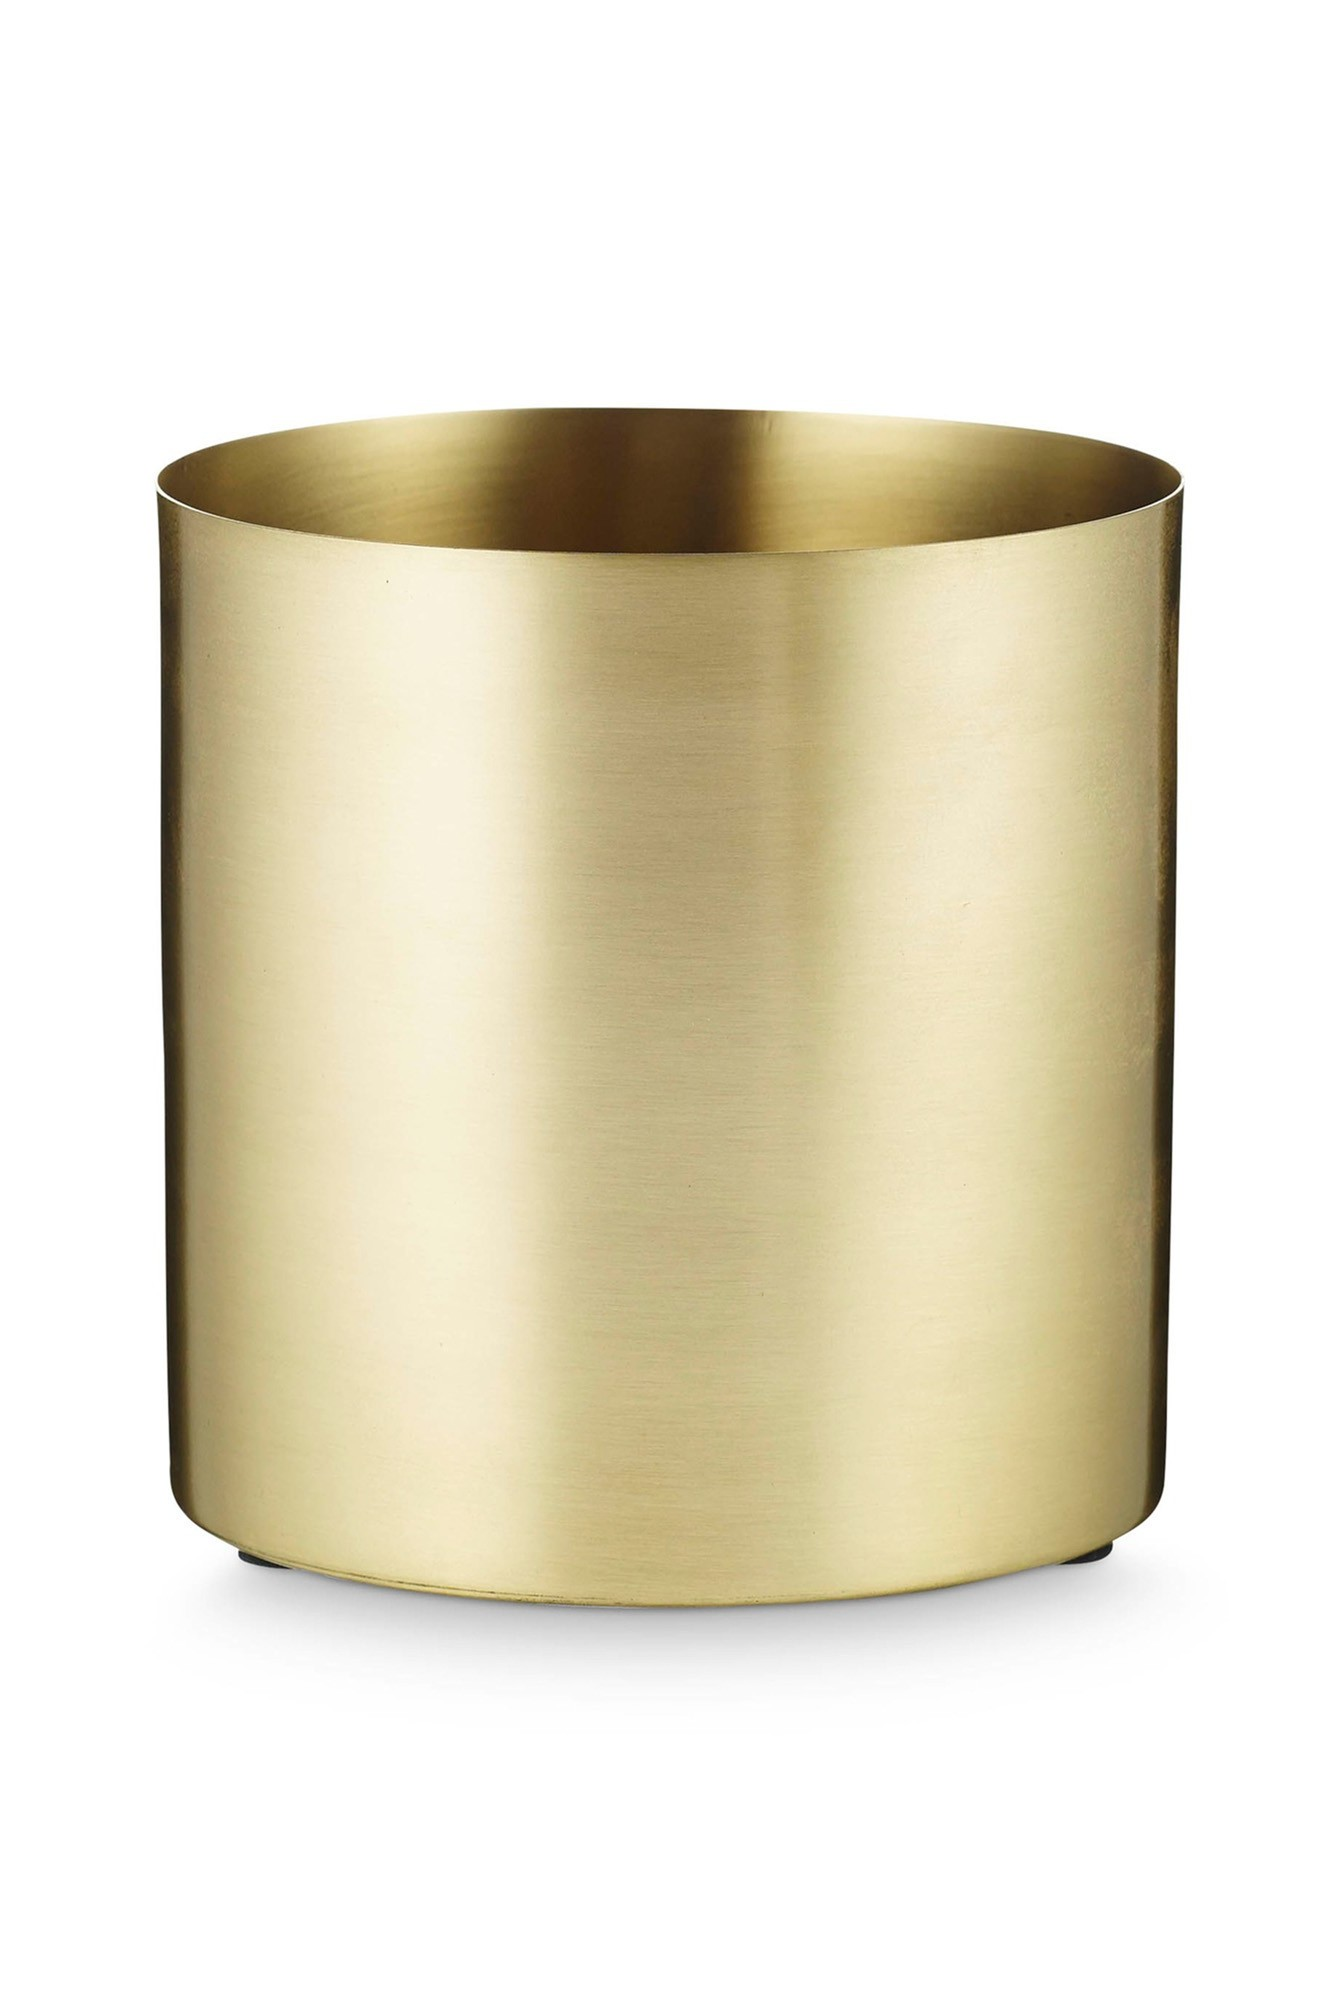 Mc Project Store Skjalm Brass Pot